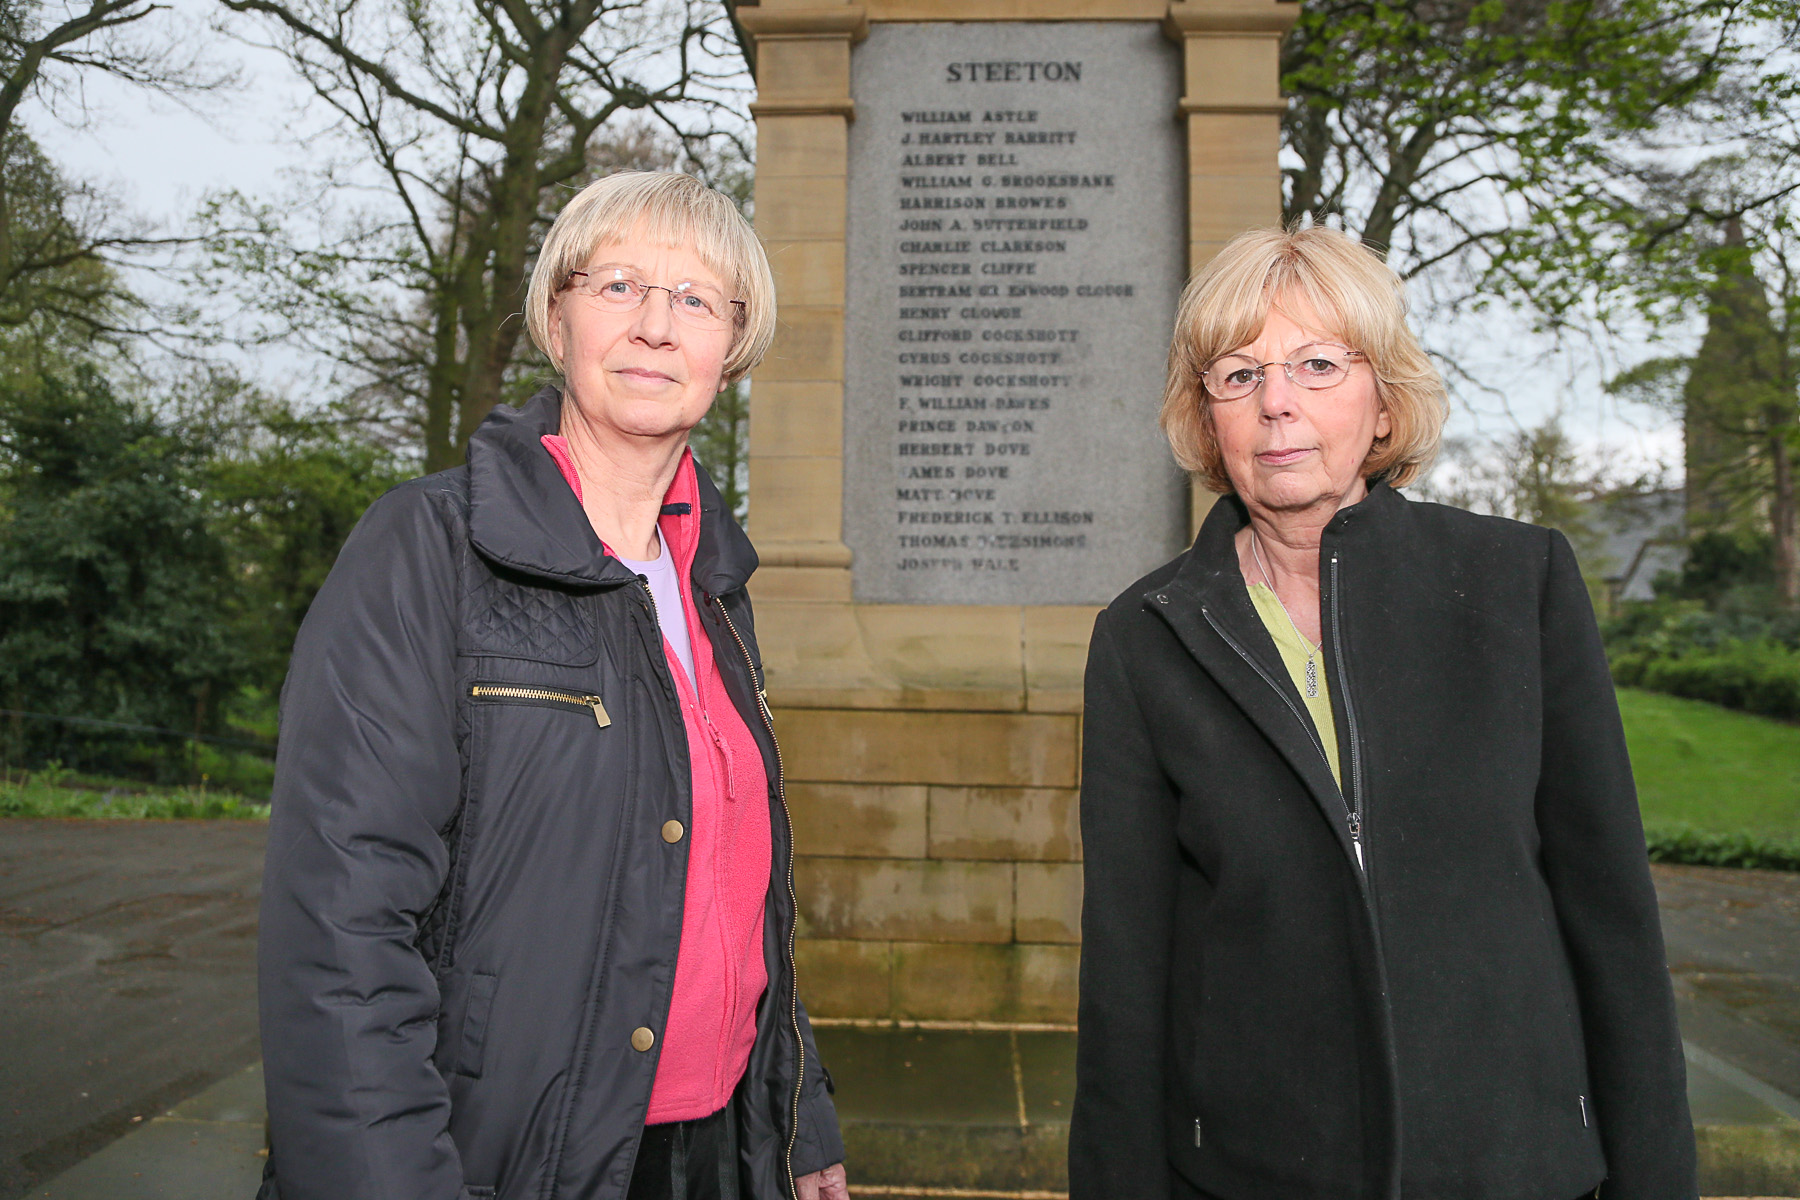 Janet Smithies, left, and Gillian Wilson, who are organising an exhibition about Steeton and Eastburn during the First World War